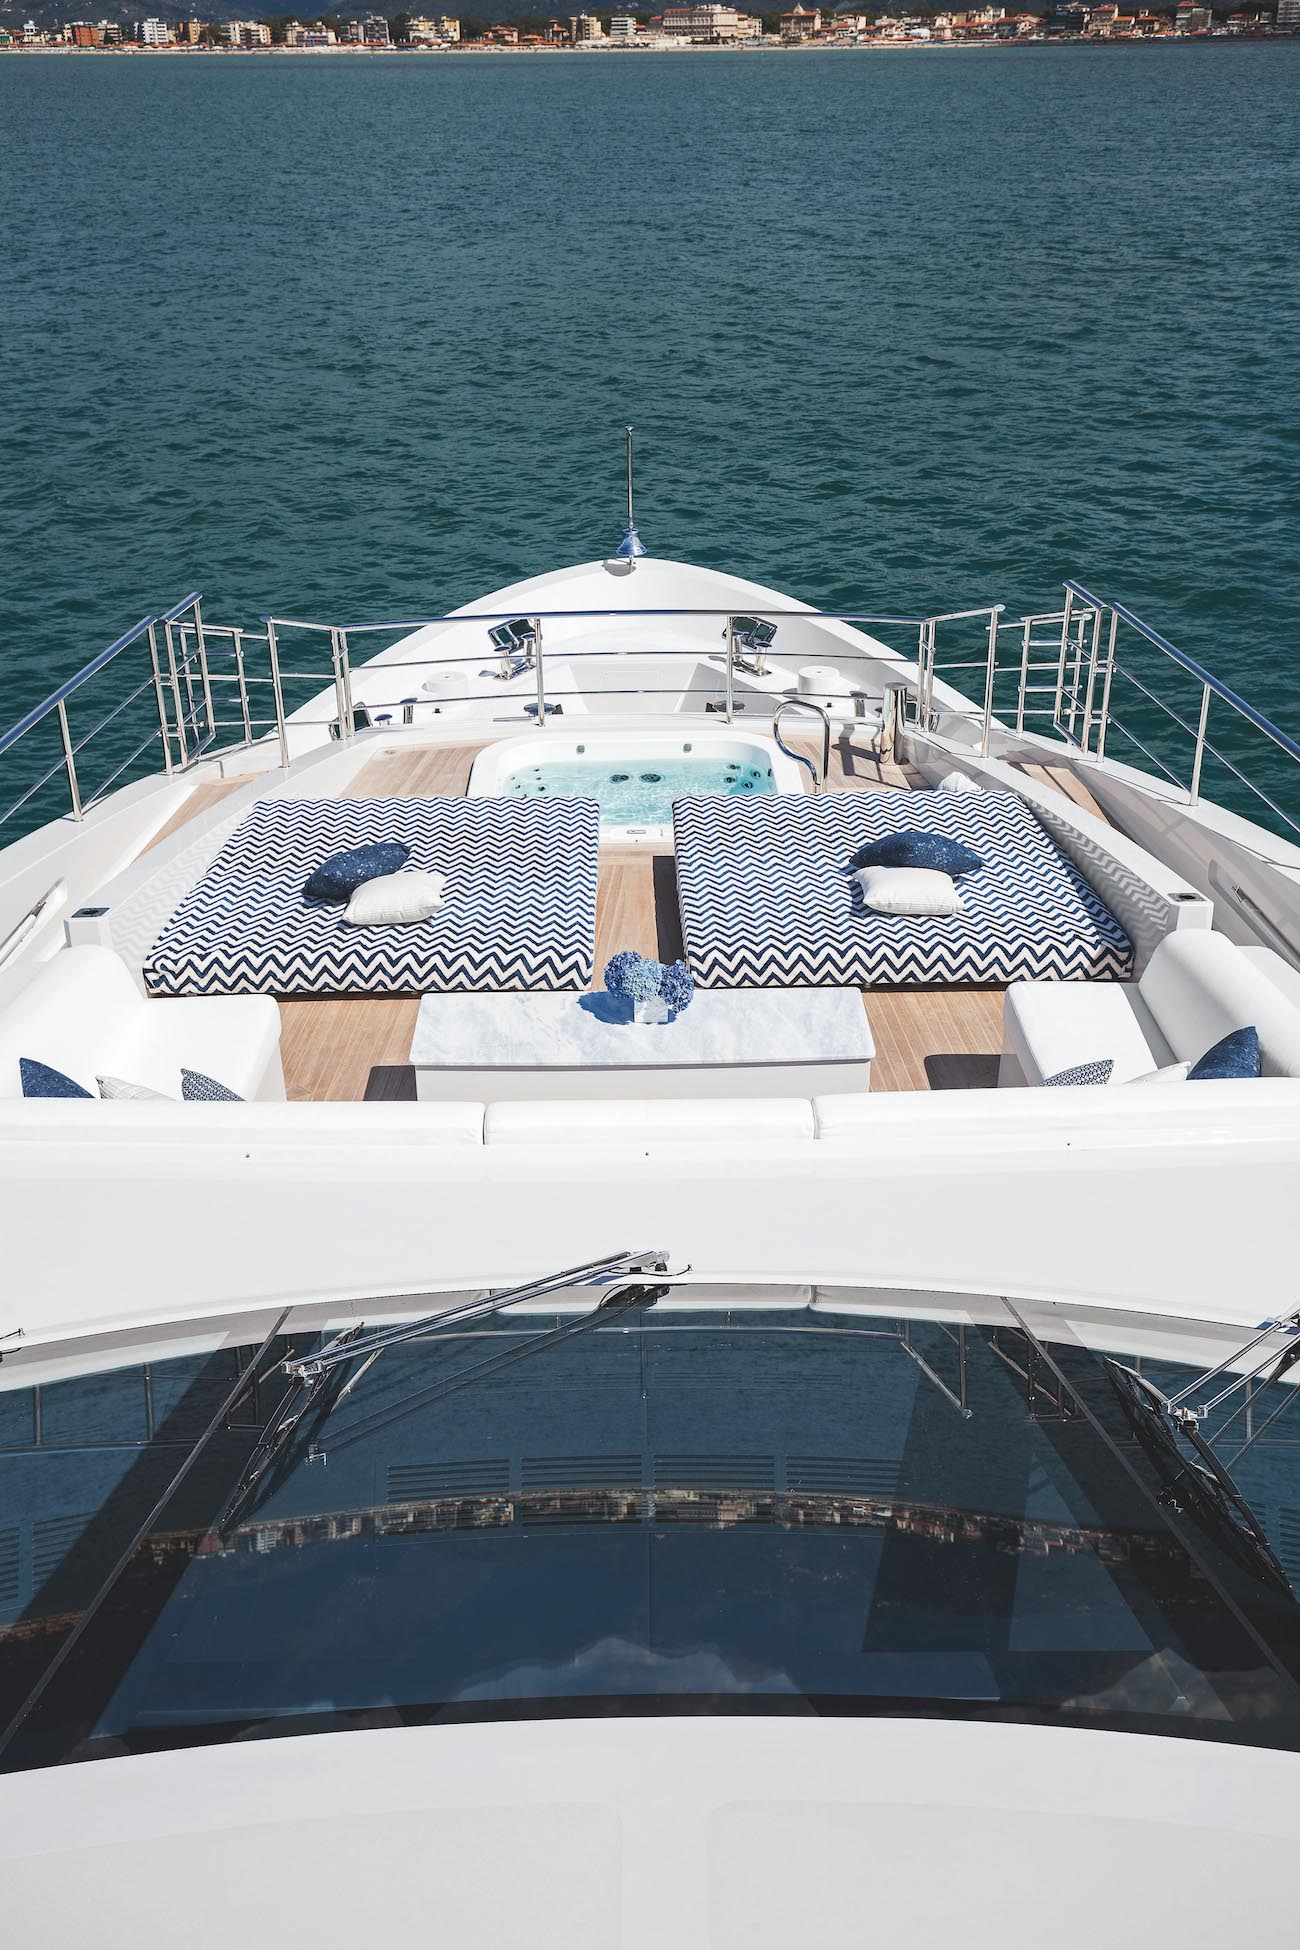 Jacuzzi And Sunbathing Area On The Upper Deck Forward